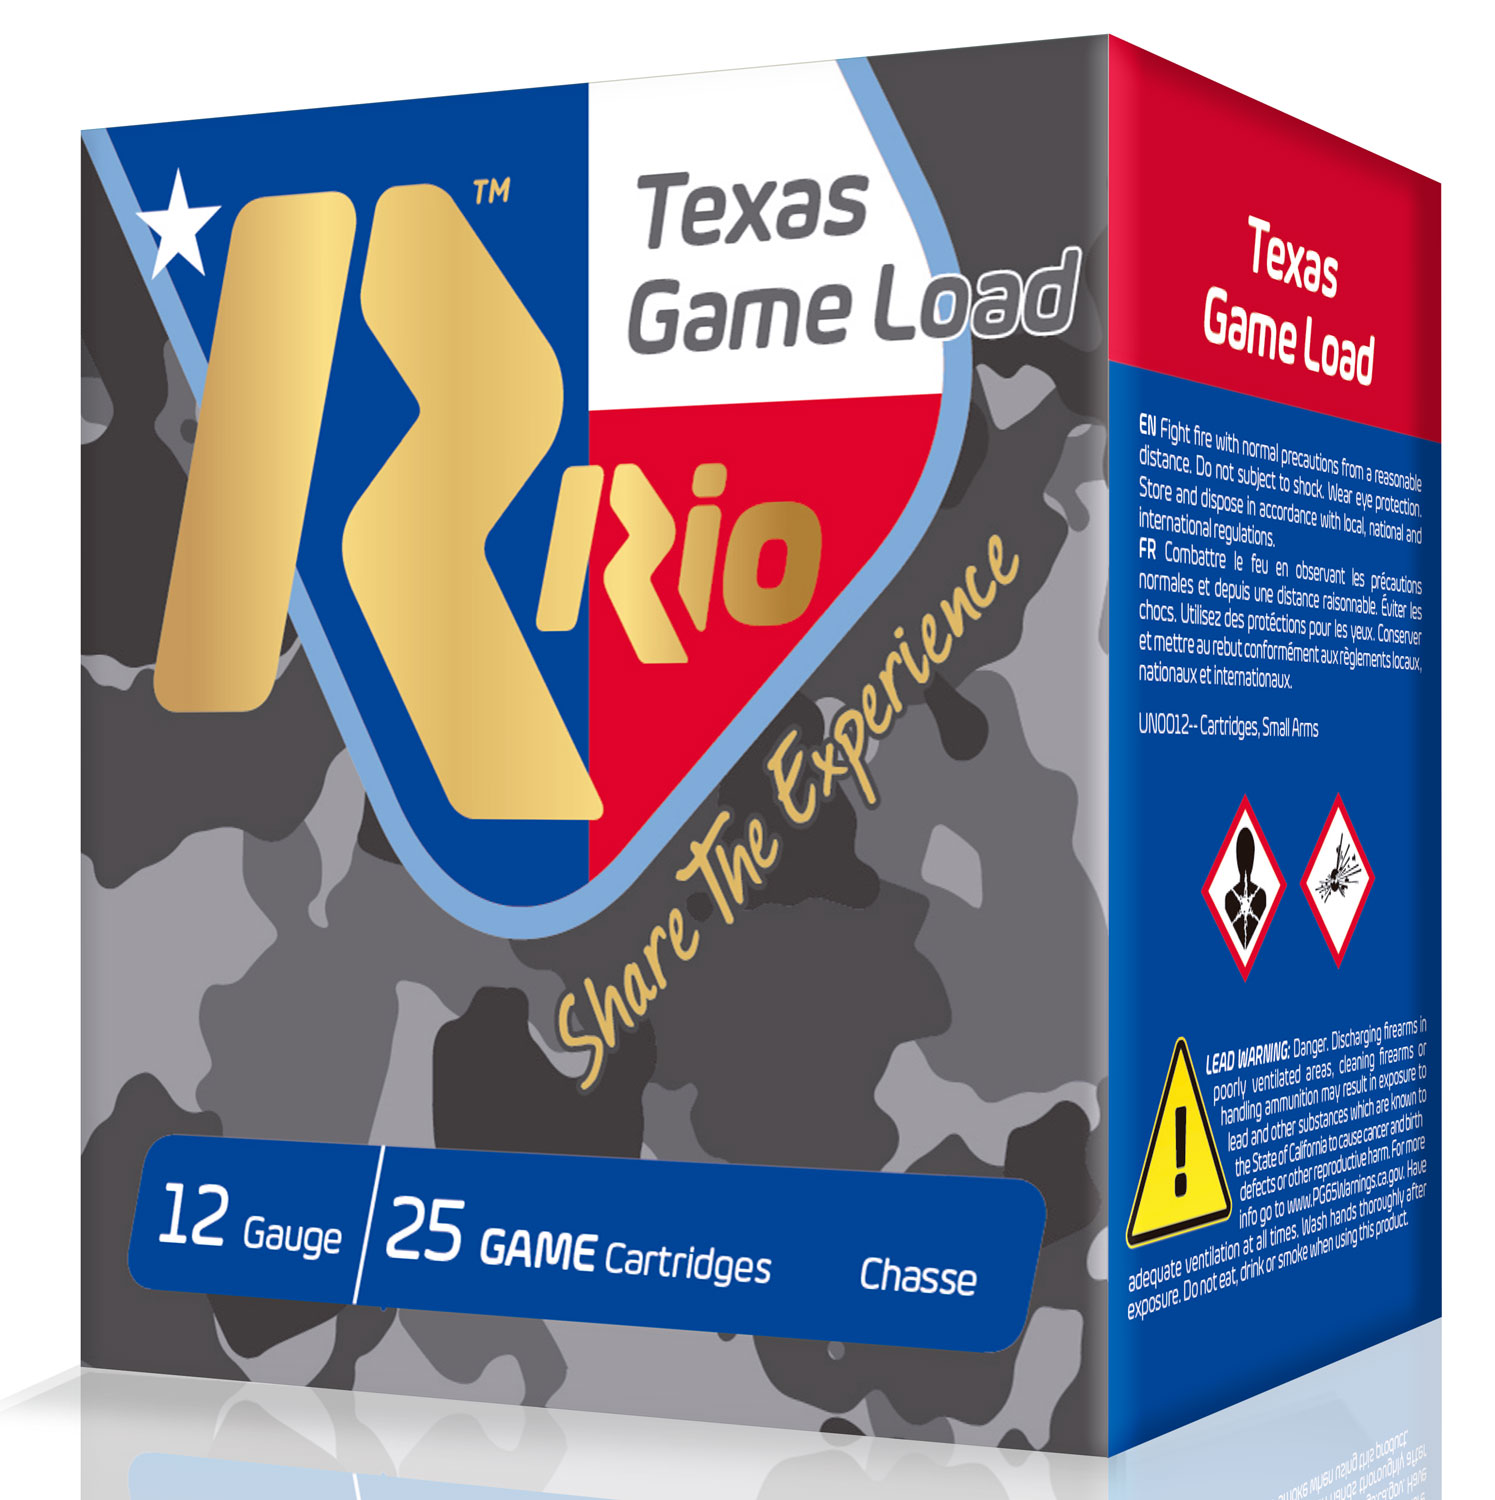 RIO AMMUNITION TGHV3675TX Top Game Texas Game Load High Velocity 12 Gauge 2.75